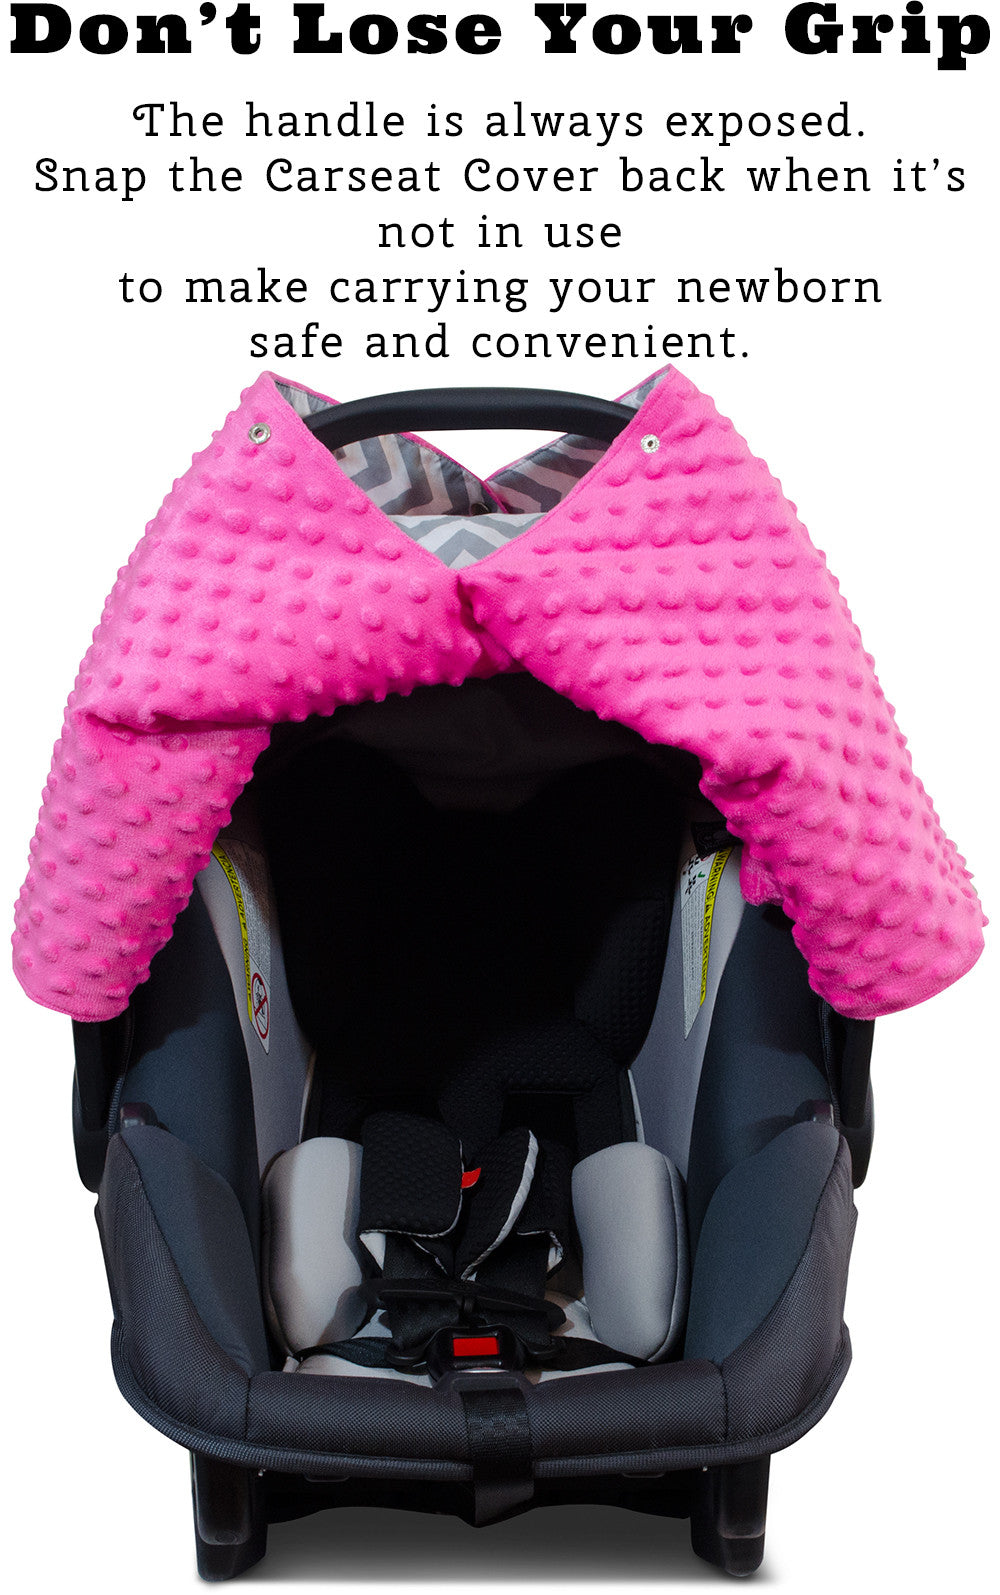 Chevron Car Seat Canopy With Hot Pink Dot Minky And Peekaboo OpeningTM